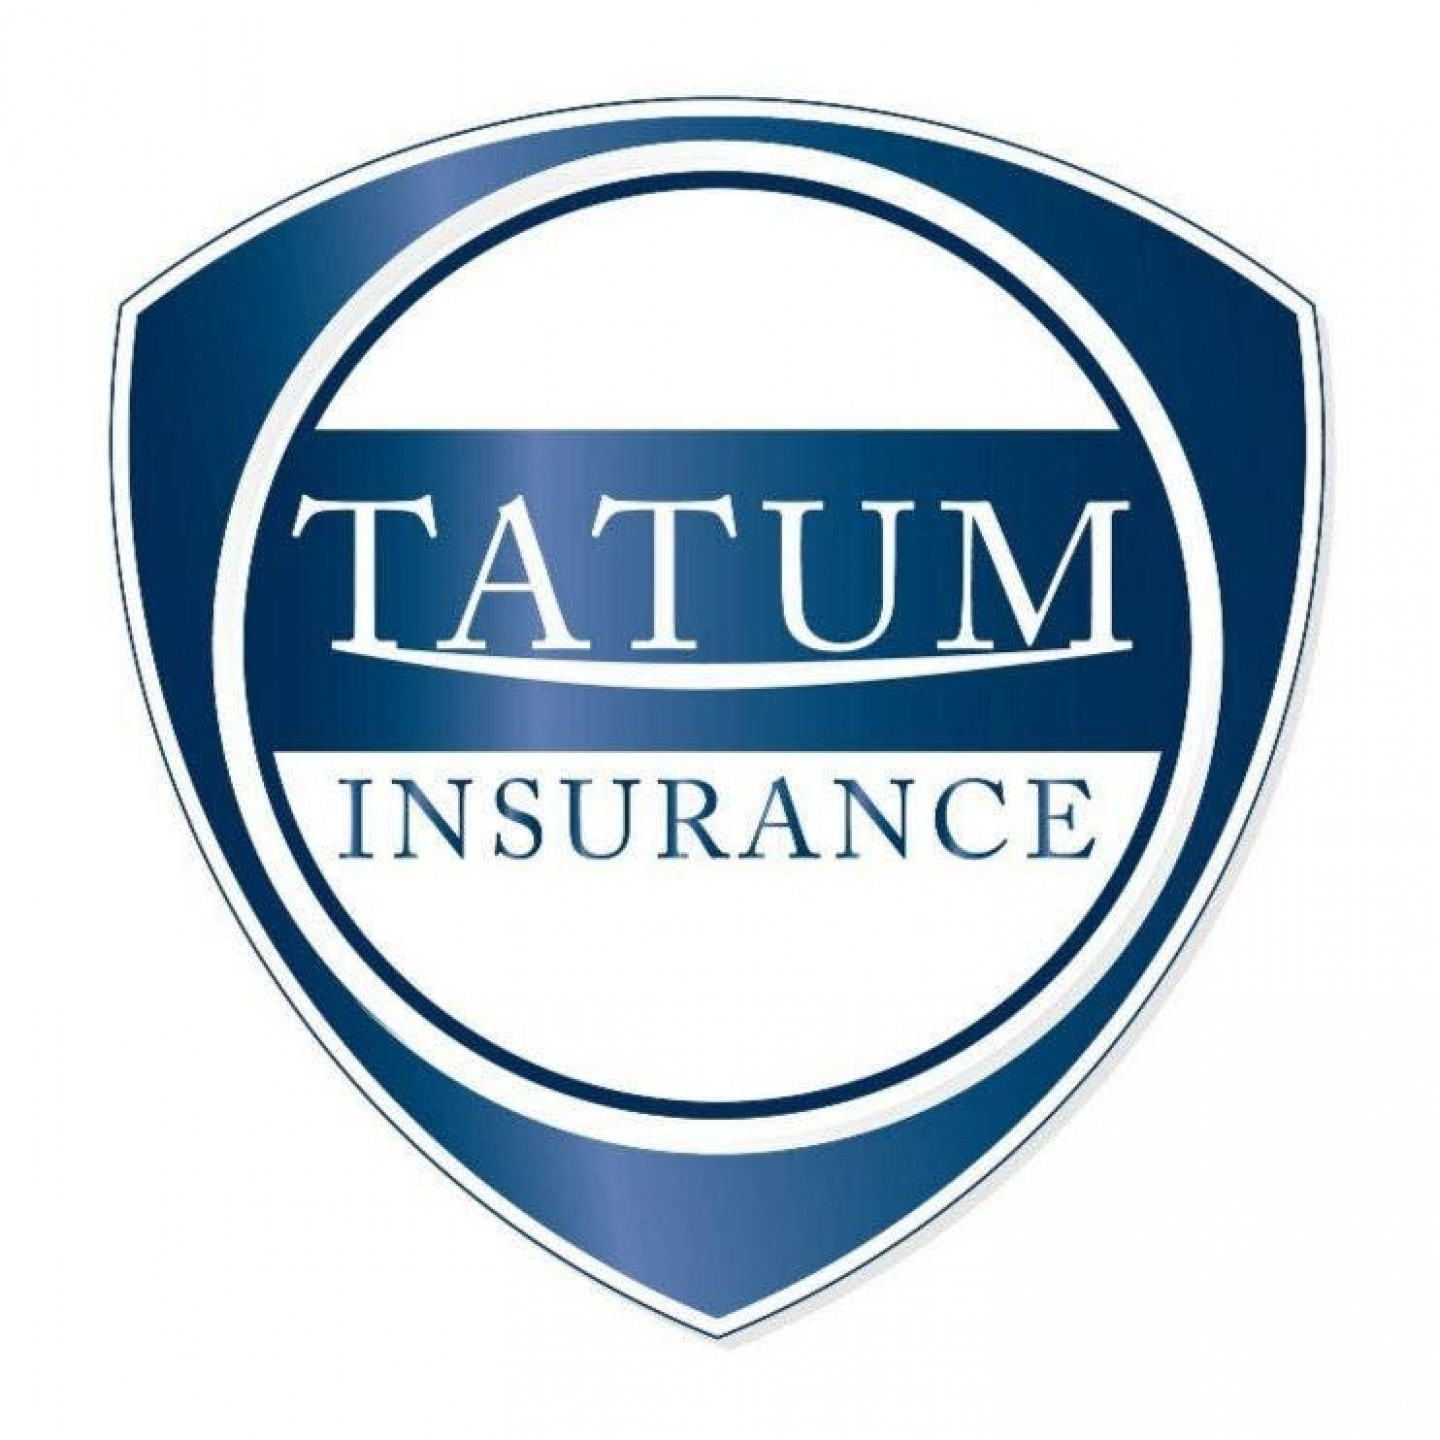 About Tatum Insurance Agency, LLC